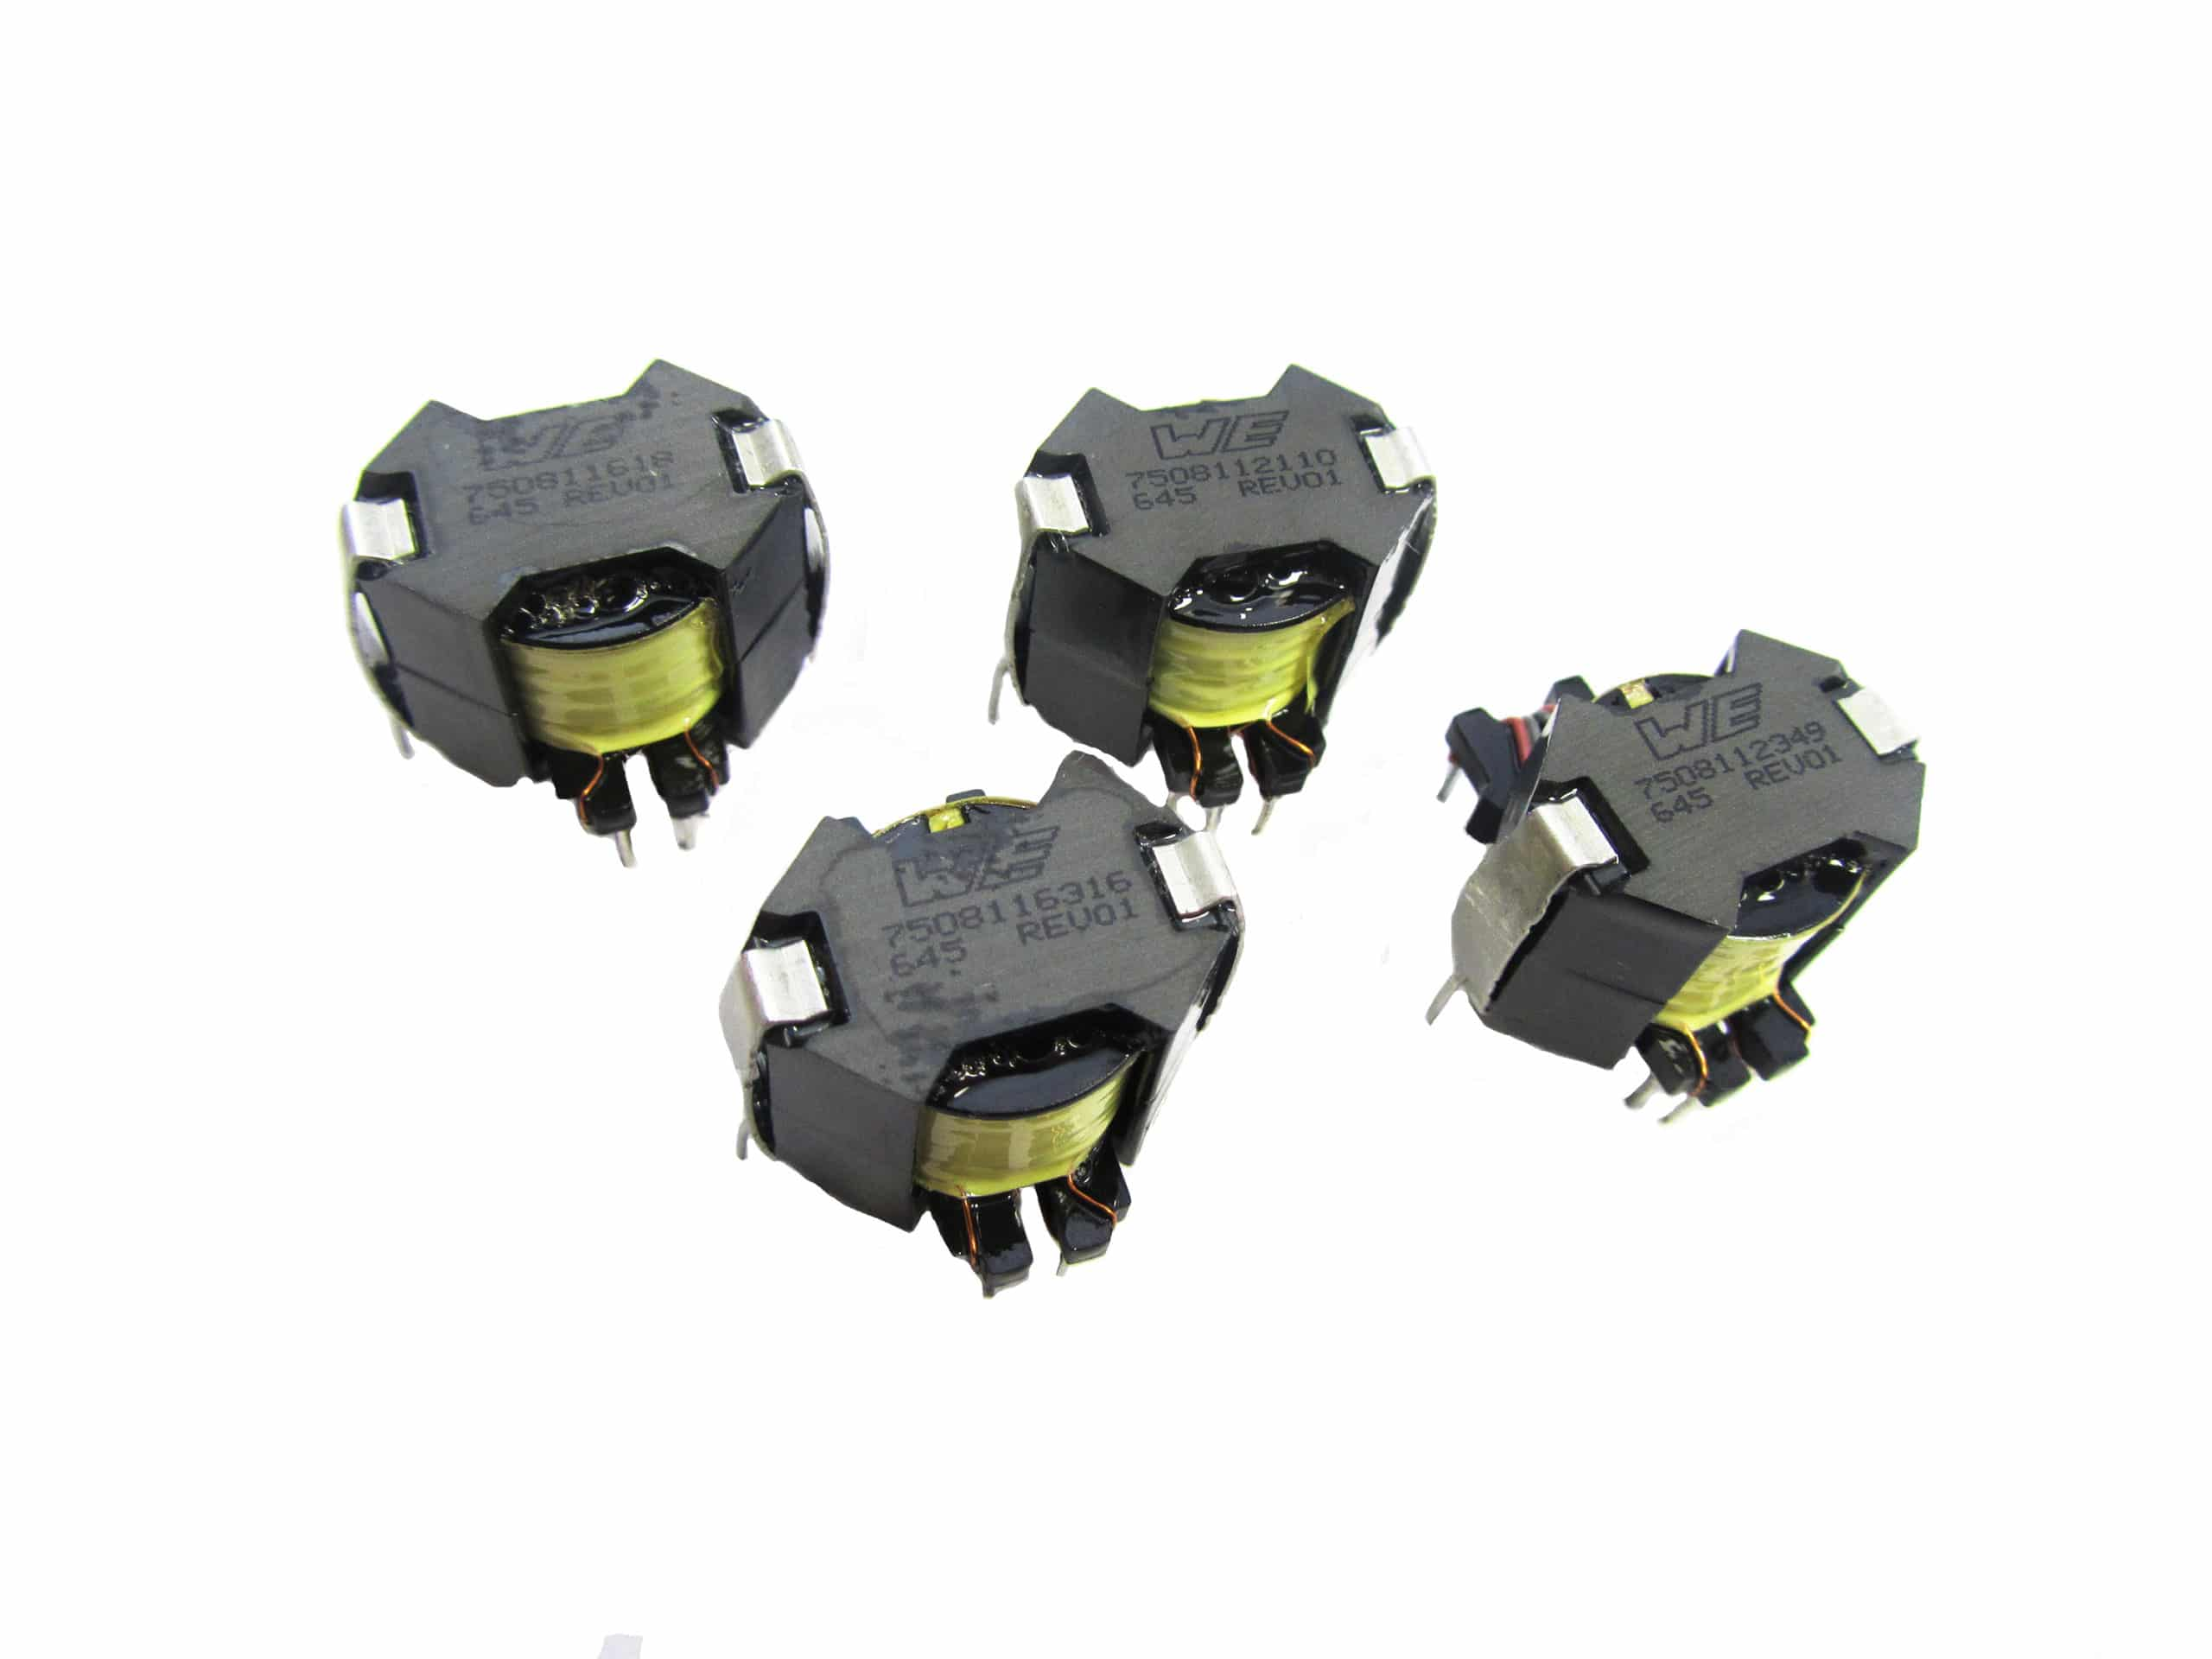 New Extended Rail RM8 Transformers from Wurth Electronics Midcom Now Available